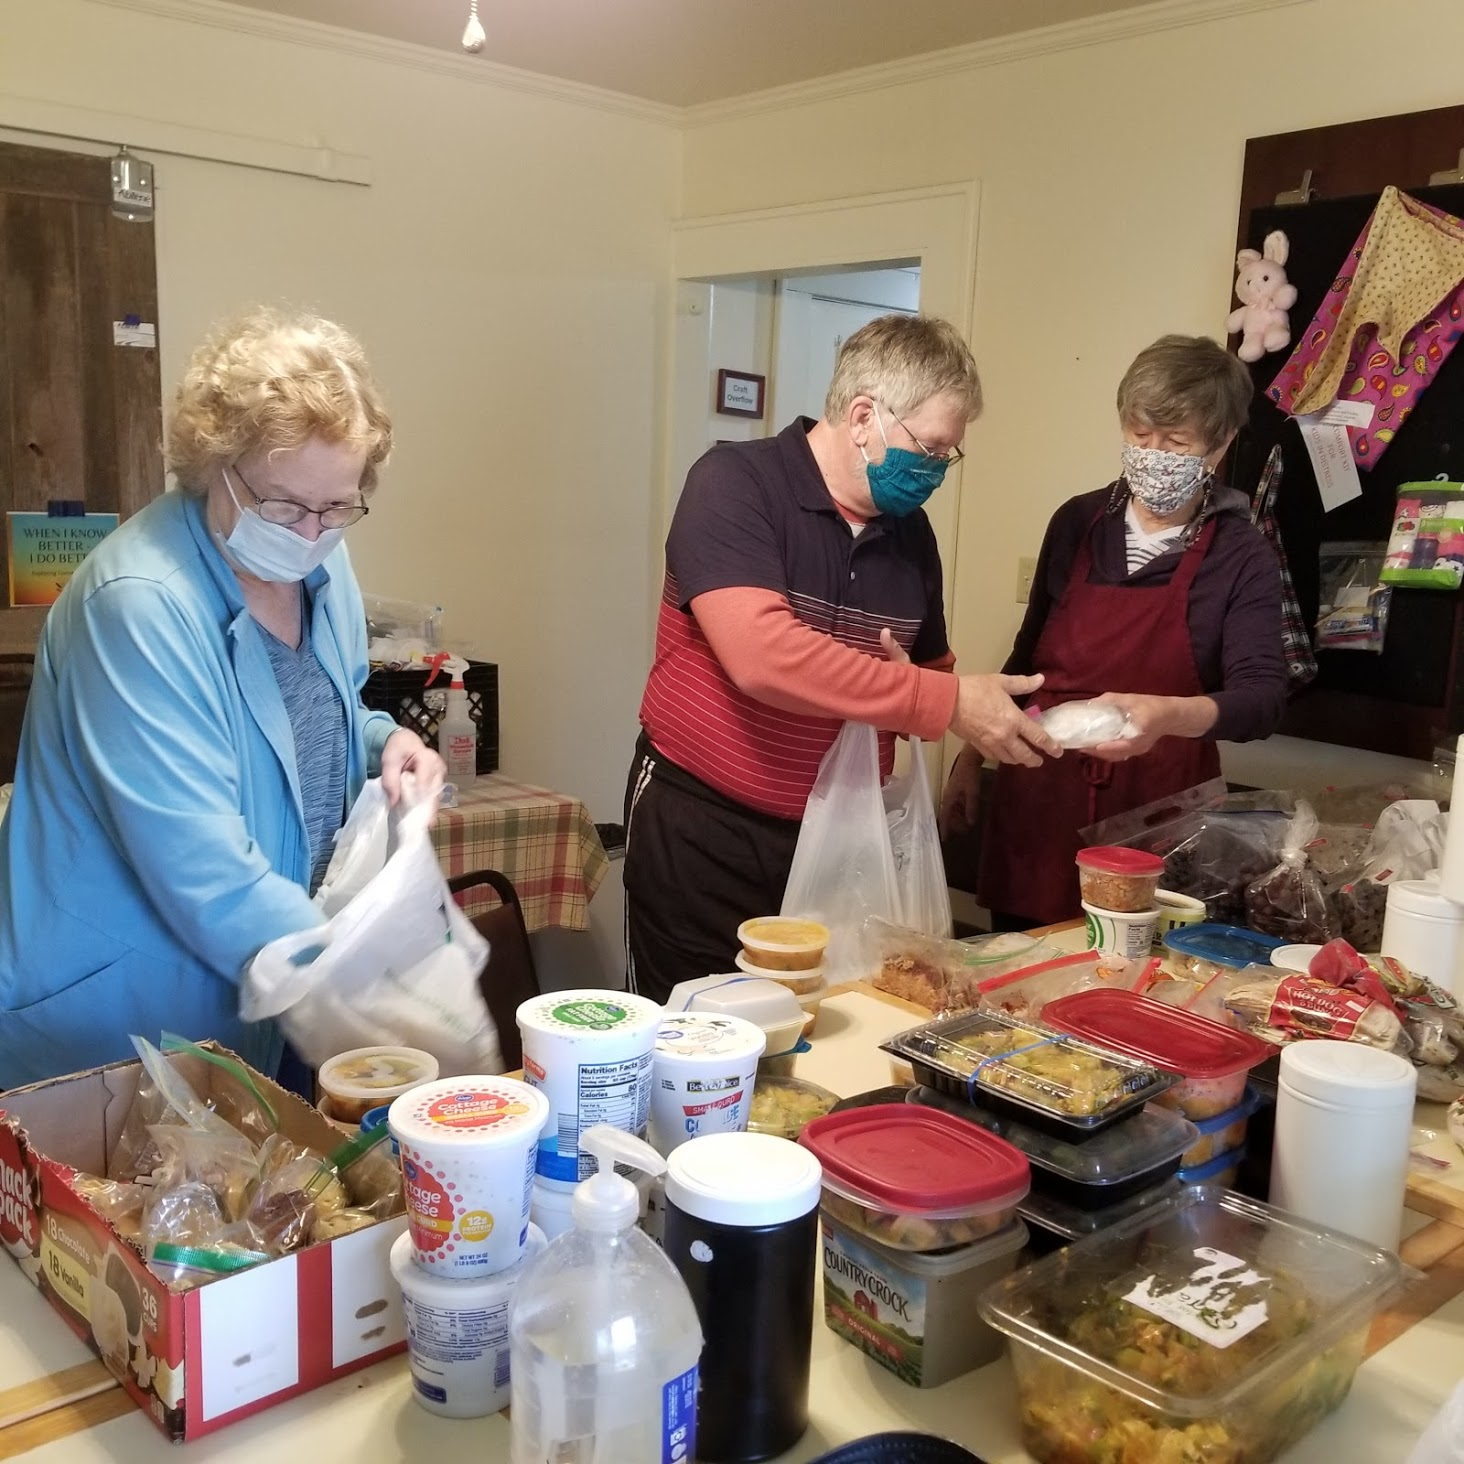 2 females and 1 male, all wearing masks and gloves packing free meals into plastic bags for disbursement to the community.